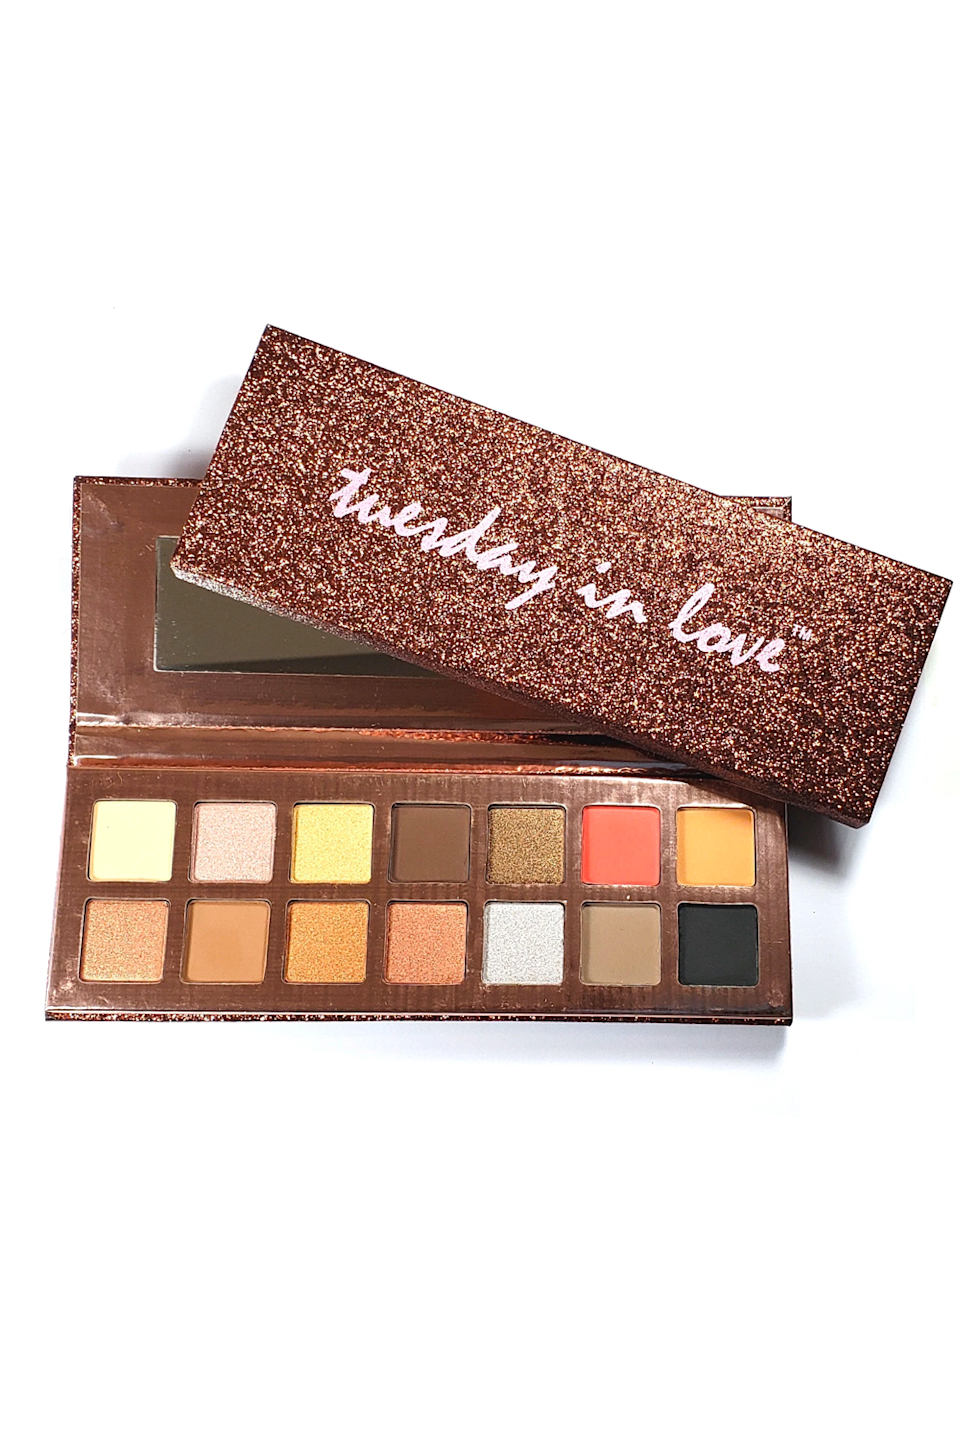 "<p>tuesdayinlove.com</p><p><strong>$36.00</strong></p><p><a href=""https://www.tuesdayinlove.com/collections/halal-cosmetics/products/glitter-berry-eye-shadow-palette"" rel=""nofollow noopener"" target=""_blank"" data-ylk=""slk:Shop Now"" class=""link rapid-noclick-resp"">Shop Now</a></p><p>Along with the IG-worthy packaging, you'll also the <strong>pigmented, long-lasting <a href=""https://www.cosmopolitan.com/style-beauty/beauty/g13108425/eyeshadow-palette-sets/"" rel=""nofollow noopener"" target=""_blank"" data-ylk=""slk:eyeshadow palettes"" class=""link rapid-noclick-resp"">eyeshadow palettes</a> </strong>of this Halal makeup brand. And since these shades are definitely too pretty to smudge with your fingertips, the brand has a few angled <a href=""https://www.tuesdayinlove.com/collections/makeup-brushes/products/eyeshadow-dome-brush-09"" rel=""nofollow noopener"" target=""_blank"" data-ylk=""slk:eyeshadow brushes"" class=""link rapid-noclick-resp"">eyeshadow brushes</a> you can add to your cart, too.</p>"